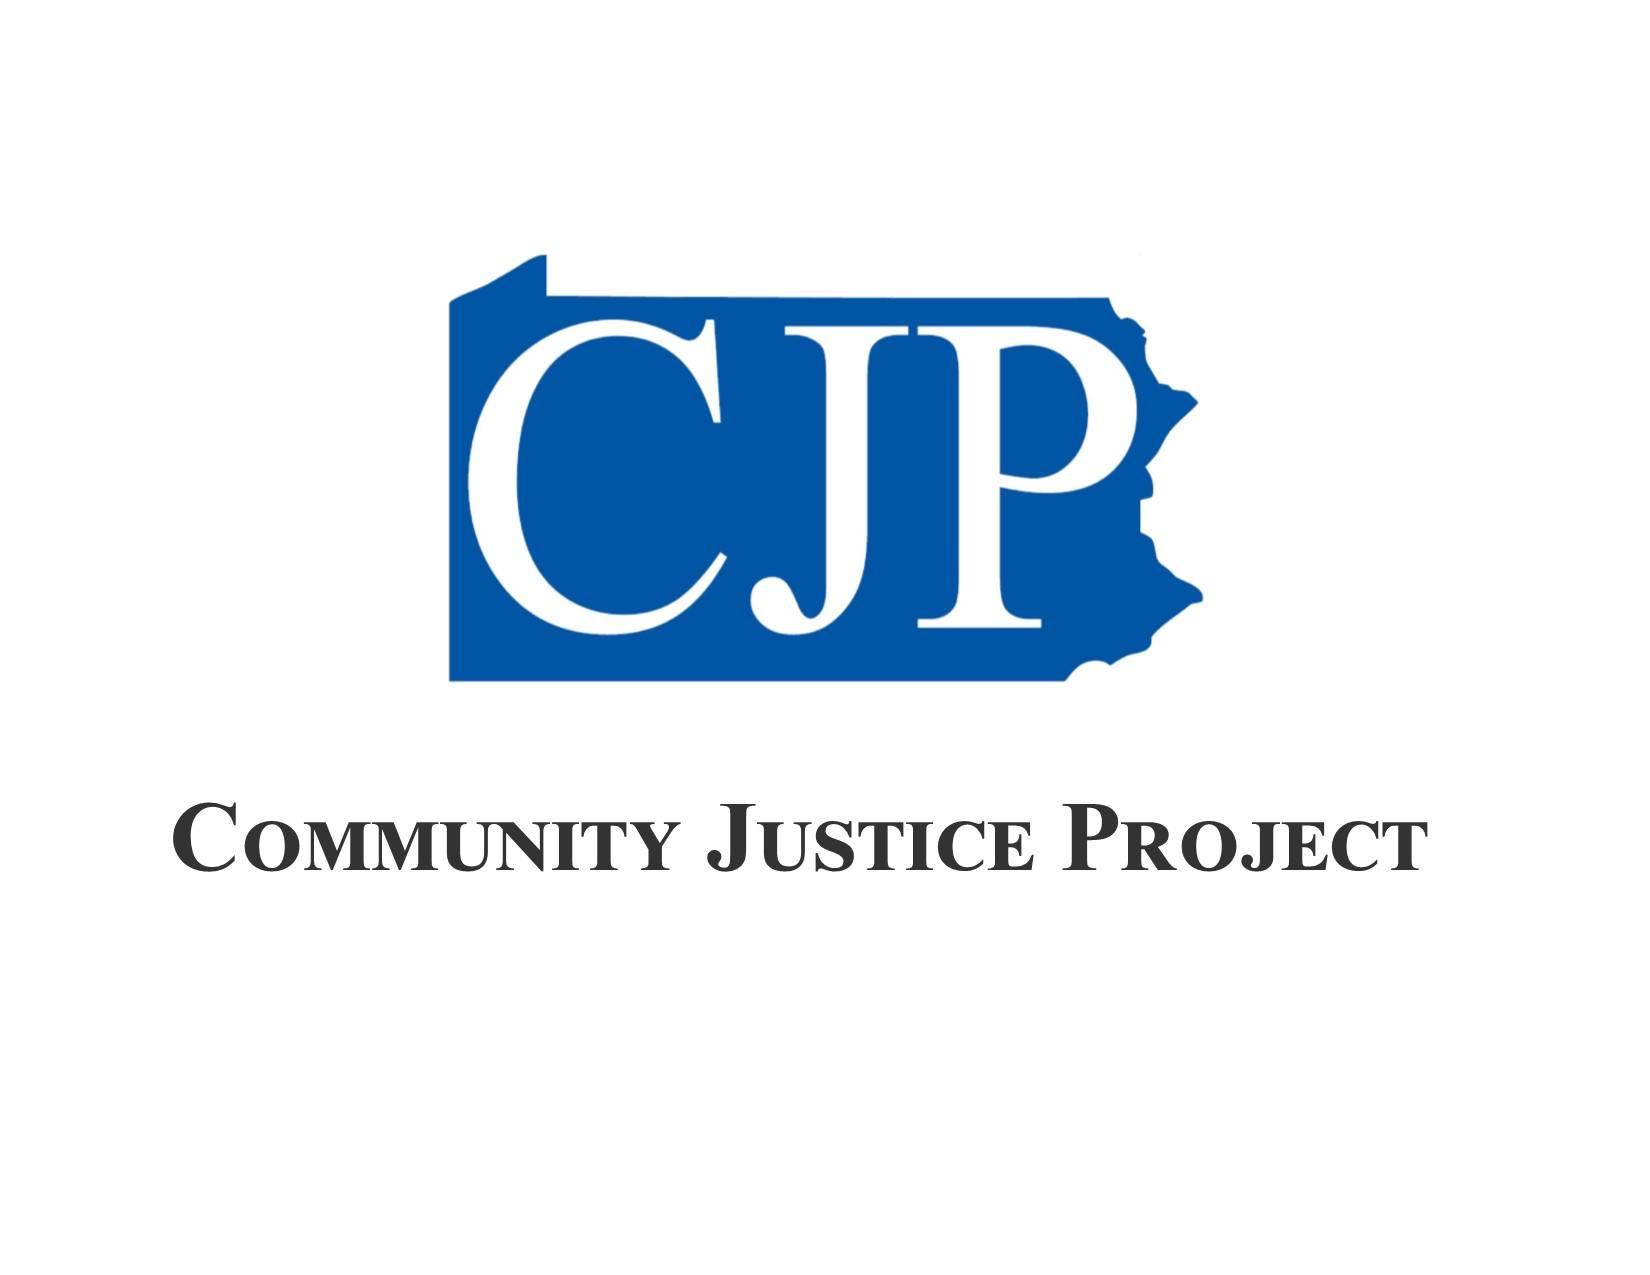 Community Justice Project - Idealist